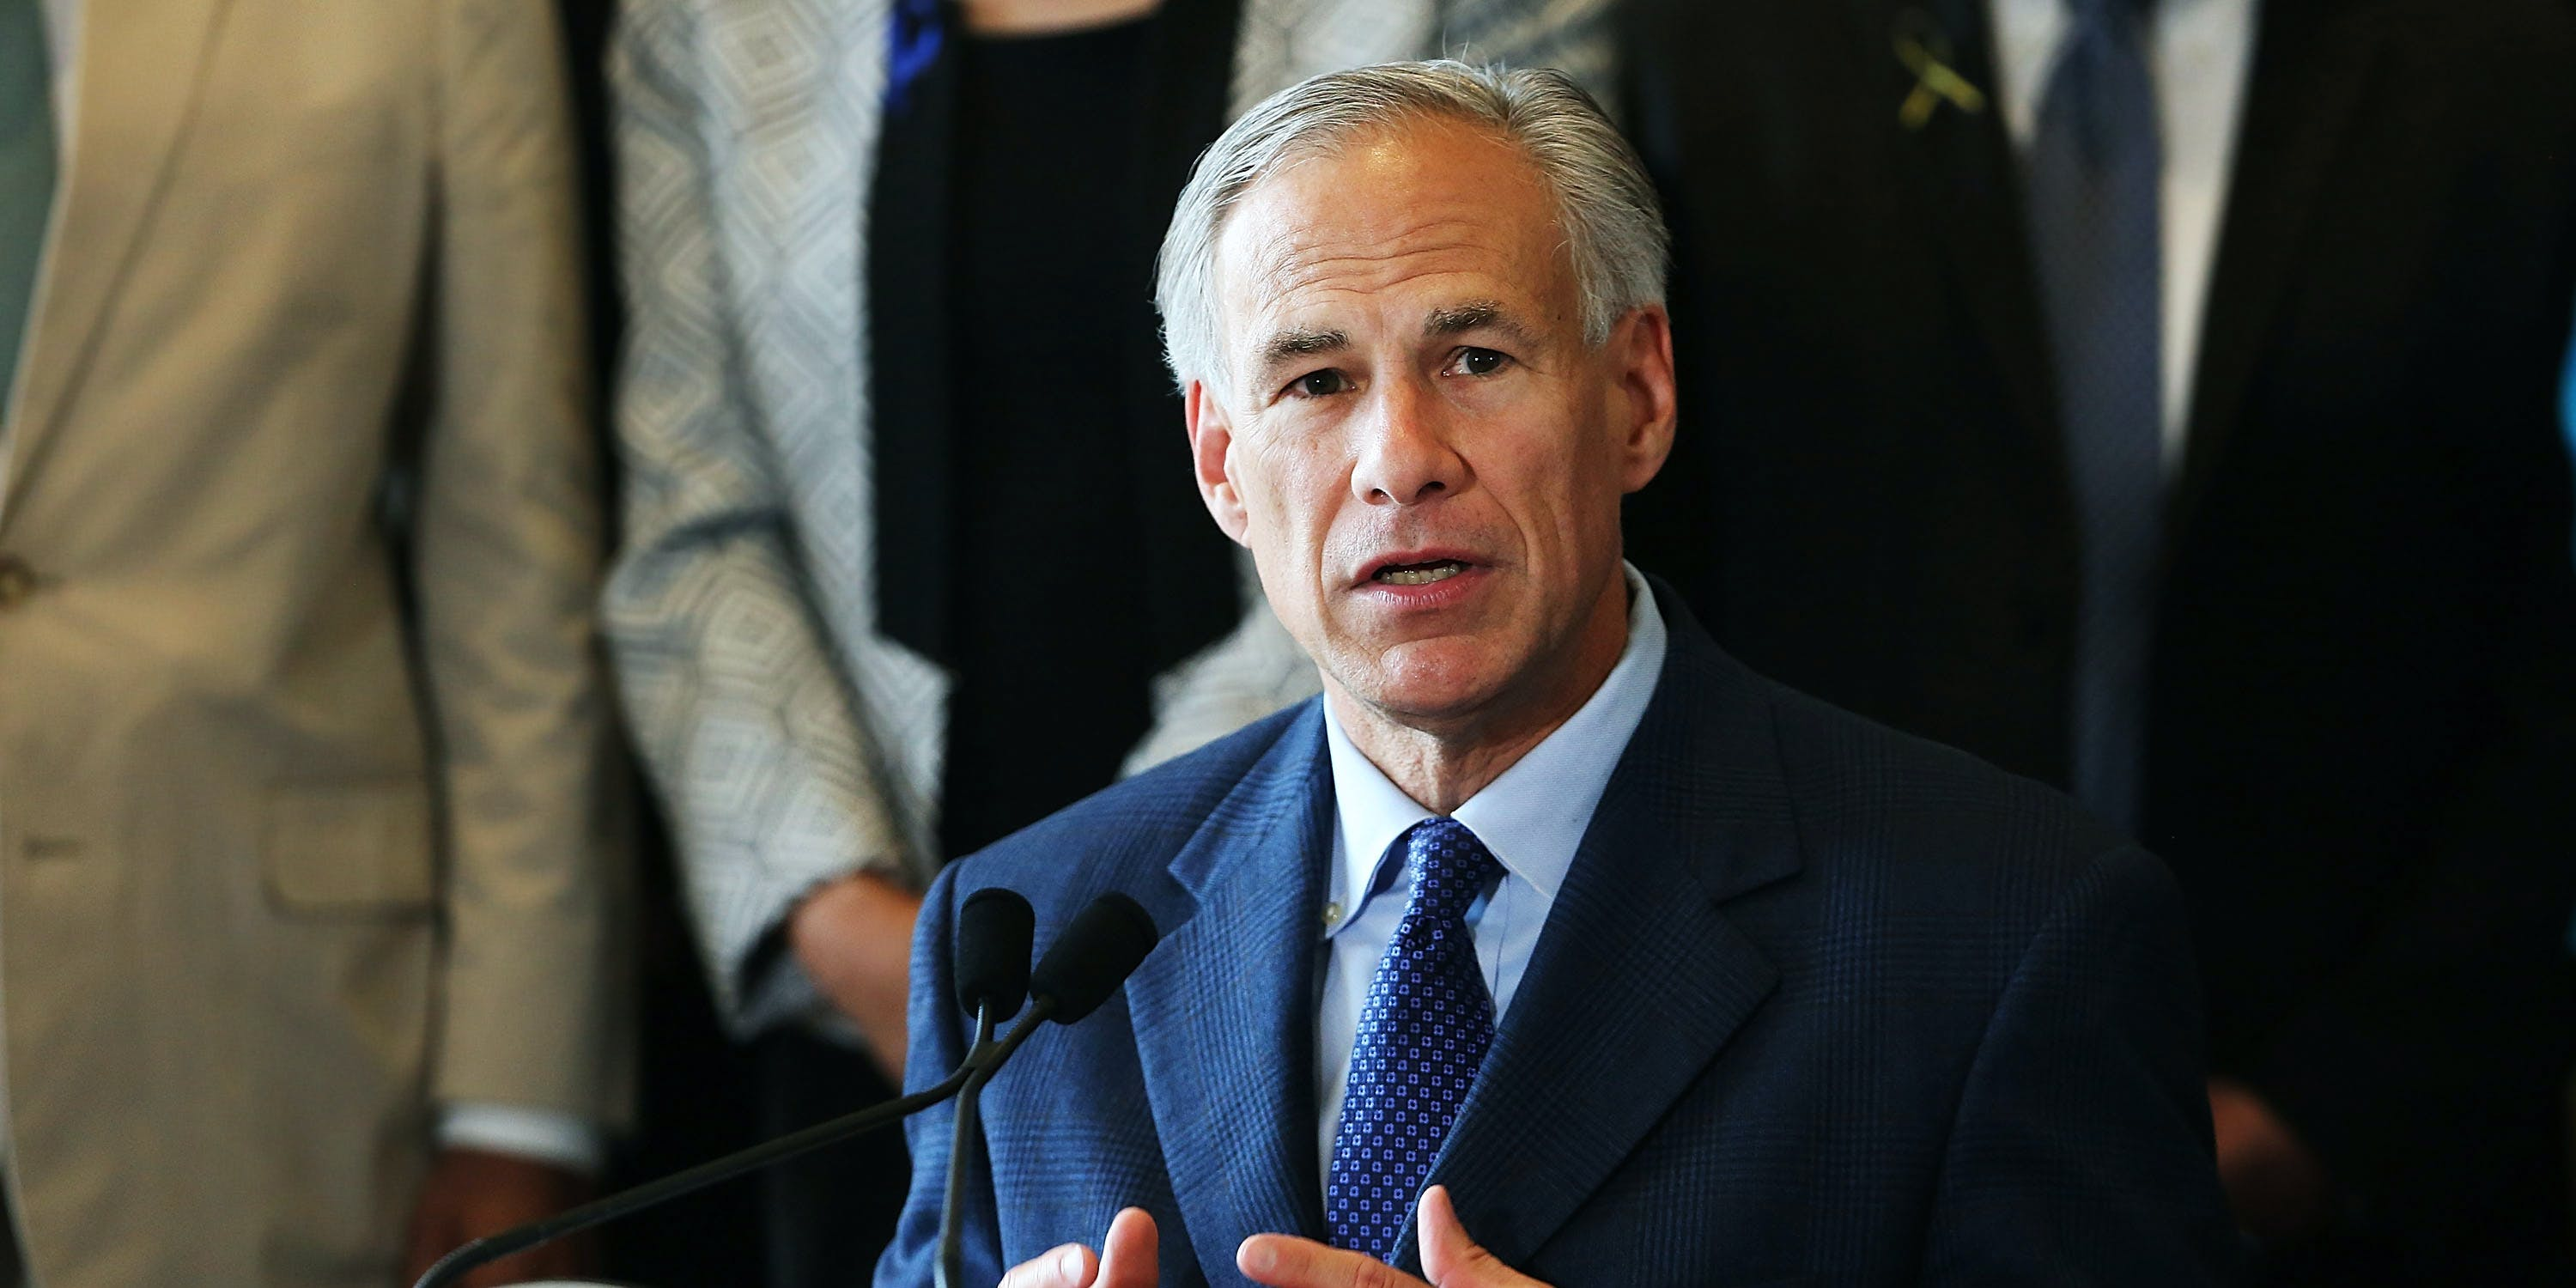 Texas Governor Greg Abbott speaks at Dallas's City Hall on July 8, 2016 in Dallas, Texas